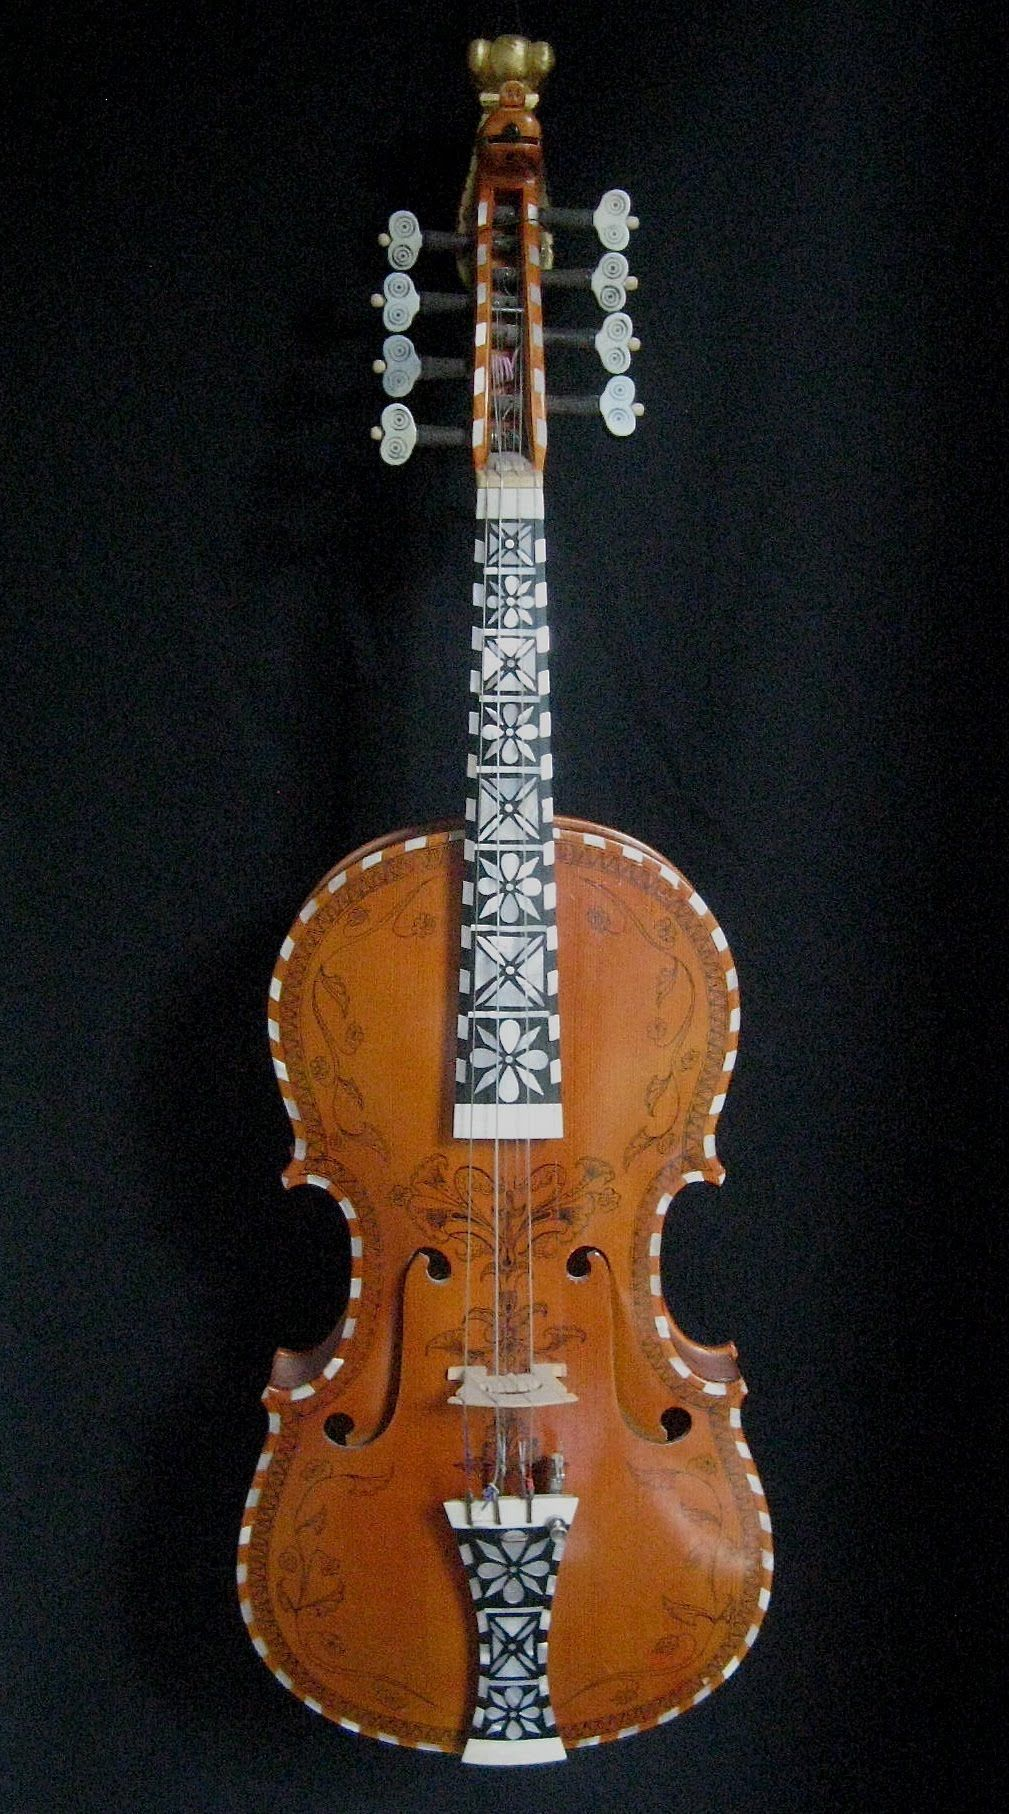 Hardingfele made by Lynn Berg - The Hardanger fiddle (in Norwegian, hardingfele) is often called the national instrument of Norway. It is similar to the violin and each one is a handmade work of art. A typical hardingfele is beautifully decorated with mother-of-pearl inlay and black pen-and-ink drawings, called rosing. It is topped with a carved head of a maiden (see photo below) or, more frequently, of an animal, usually a lion. Its most distinguishing feature is the four or five…